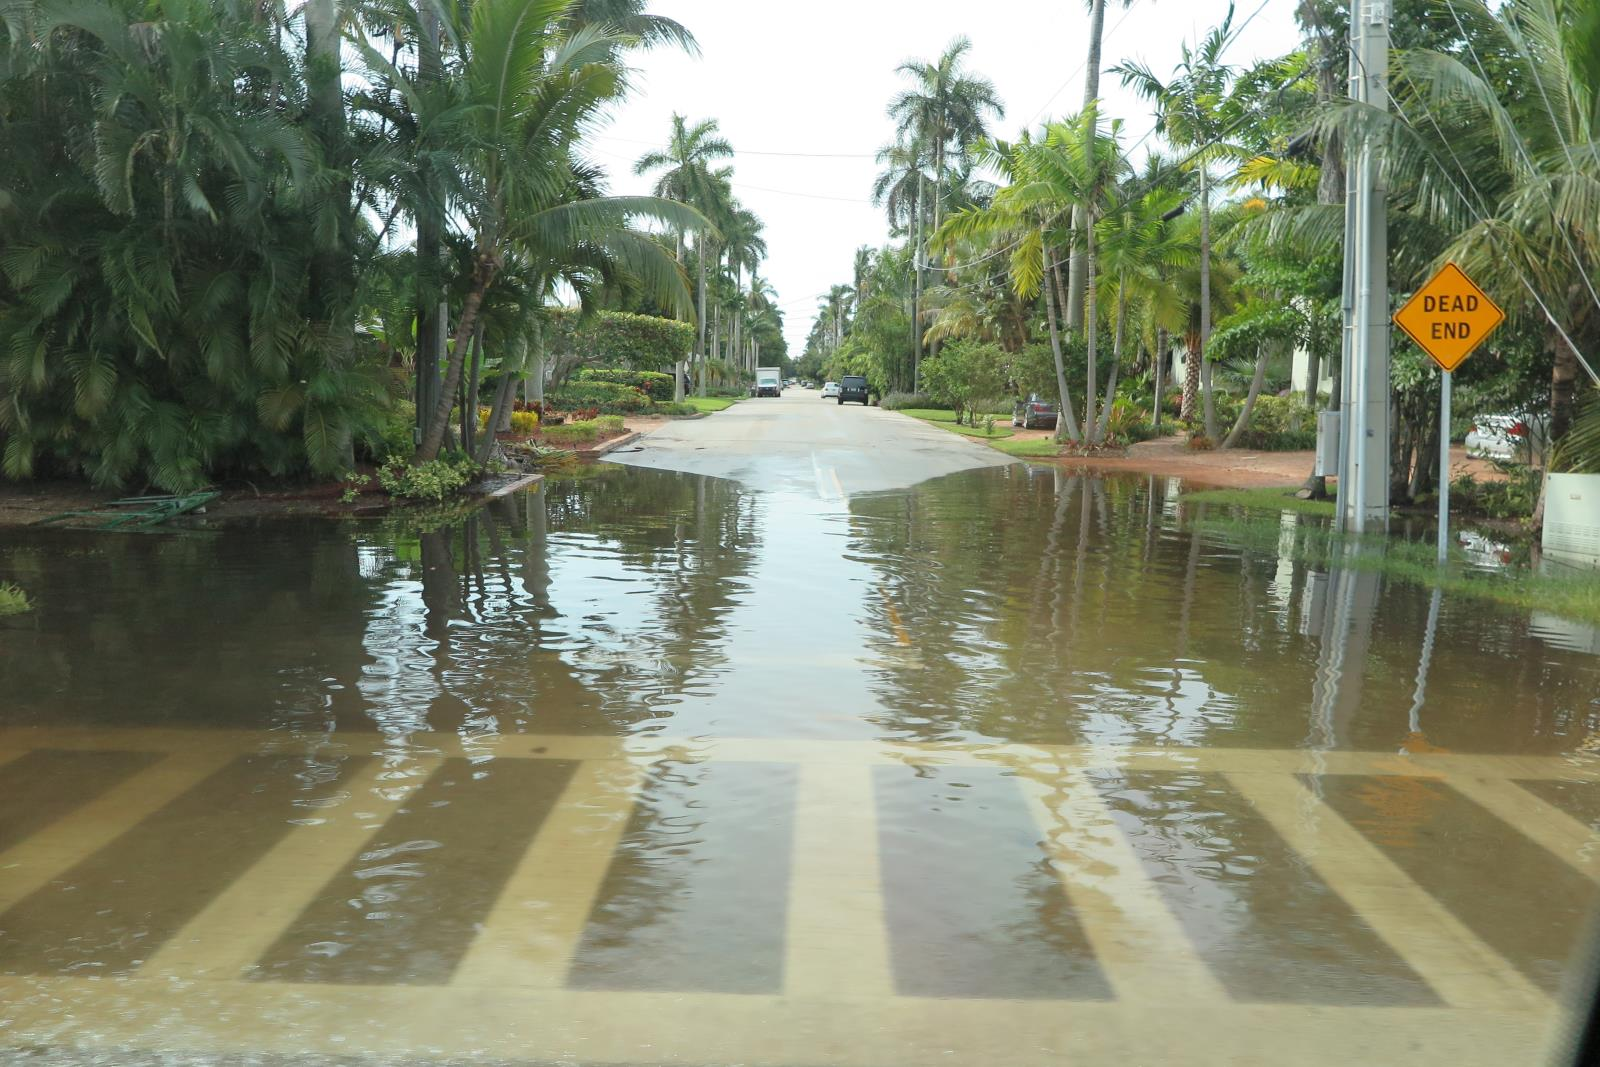 City of fort lauderdale fl floods and flood insurance las olas isles flooding geenschuldenfo Images